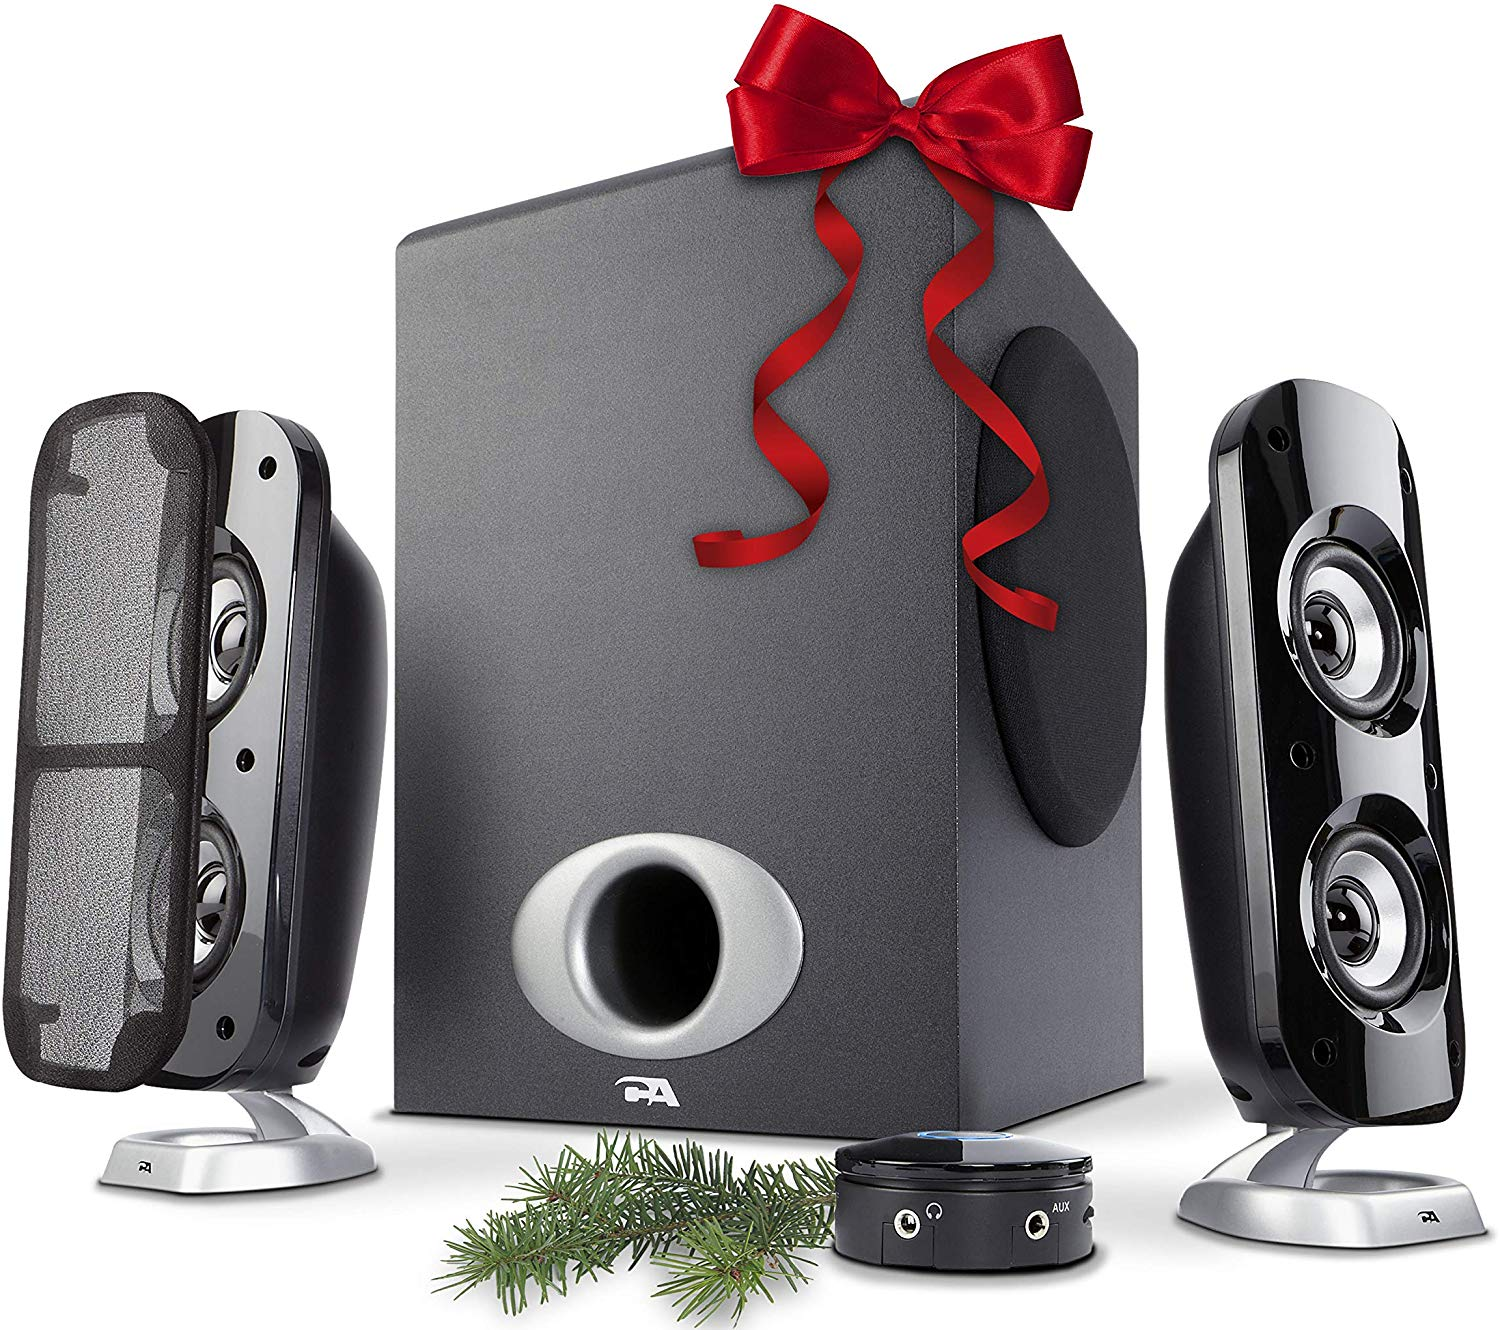 Cyber Acoustics 2.1 Subwoofer Speaker System review